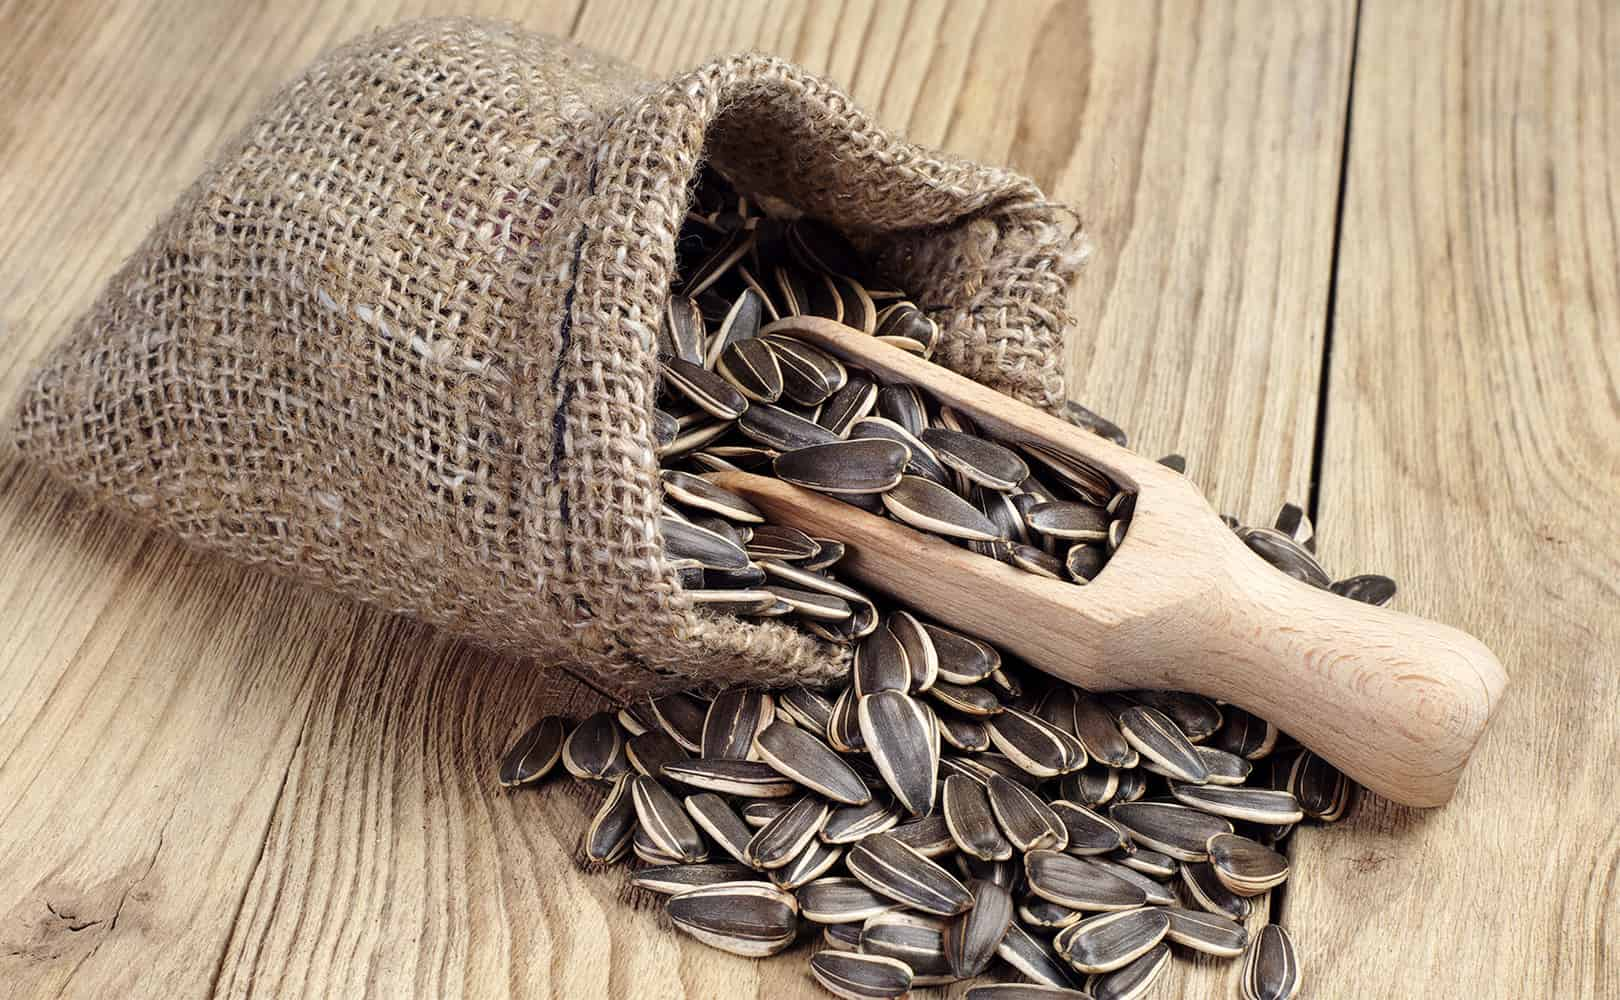 Sunflower seeds spilling out of a bad with a wooden spoon on a wooden table.